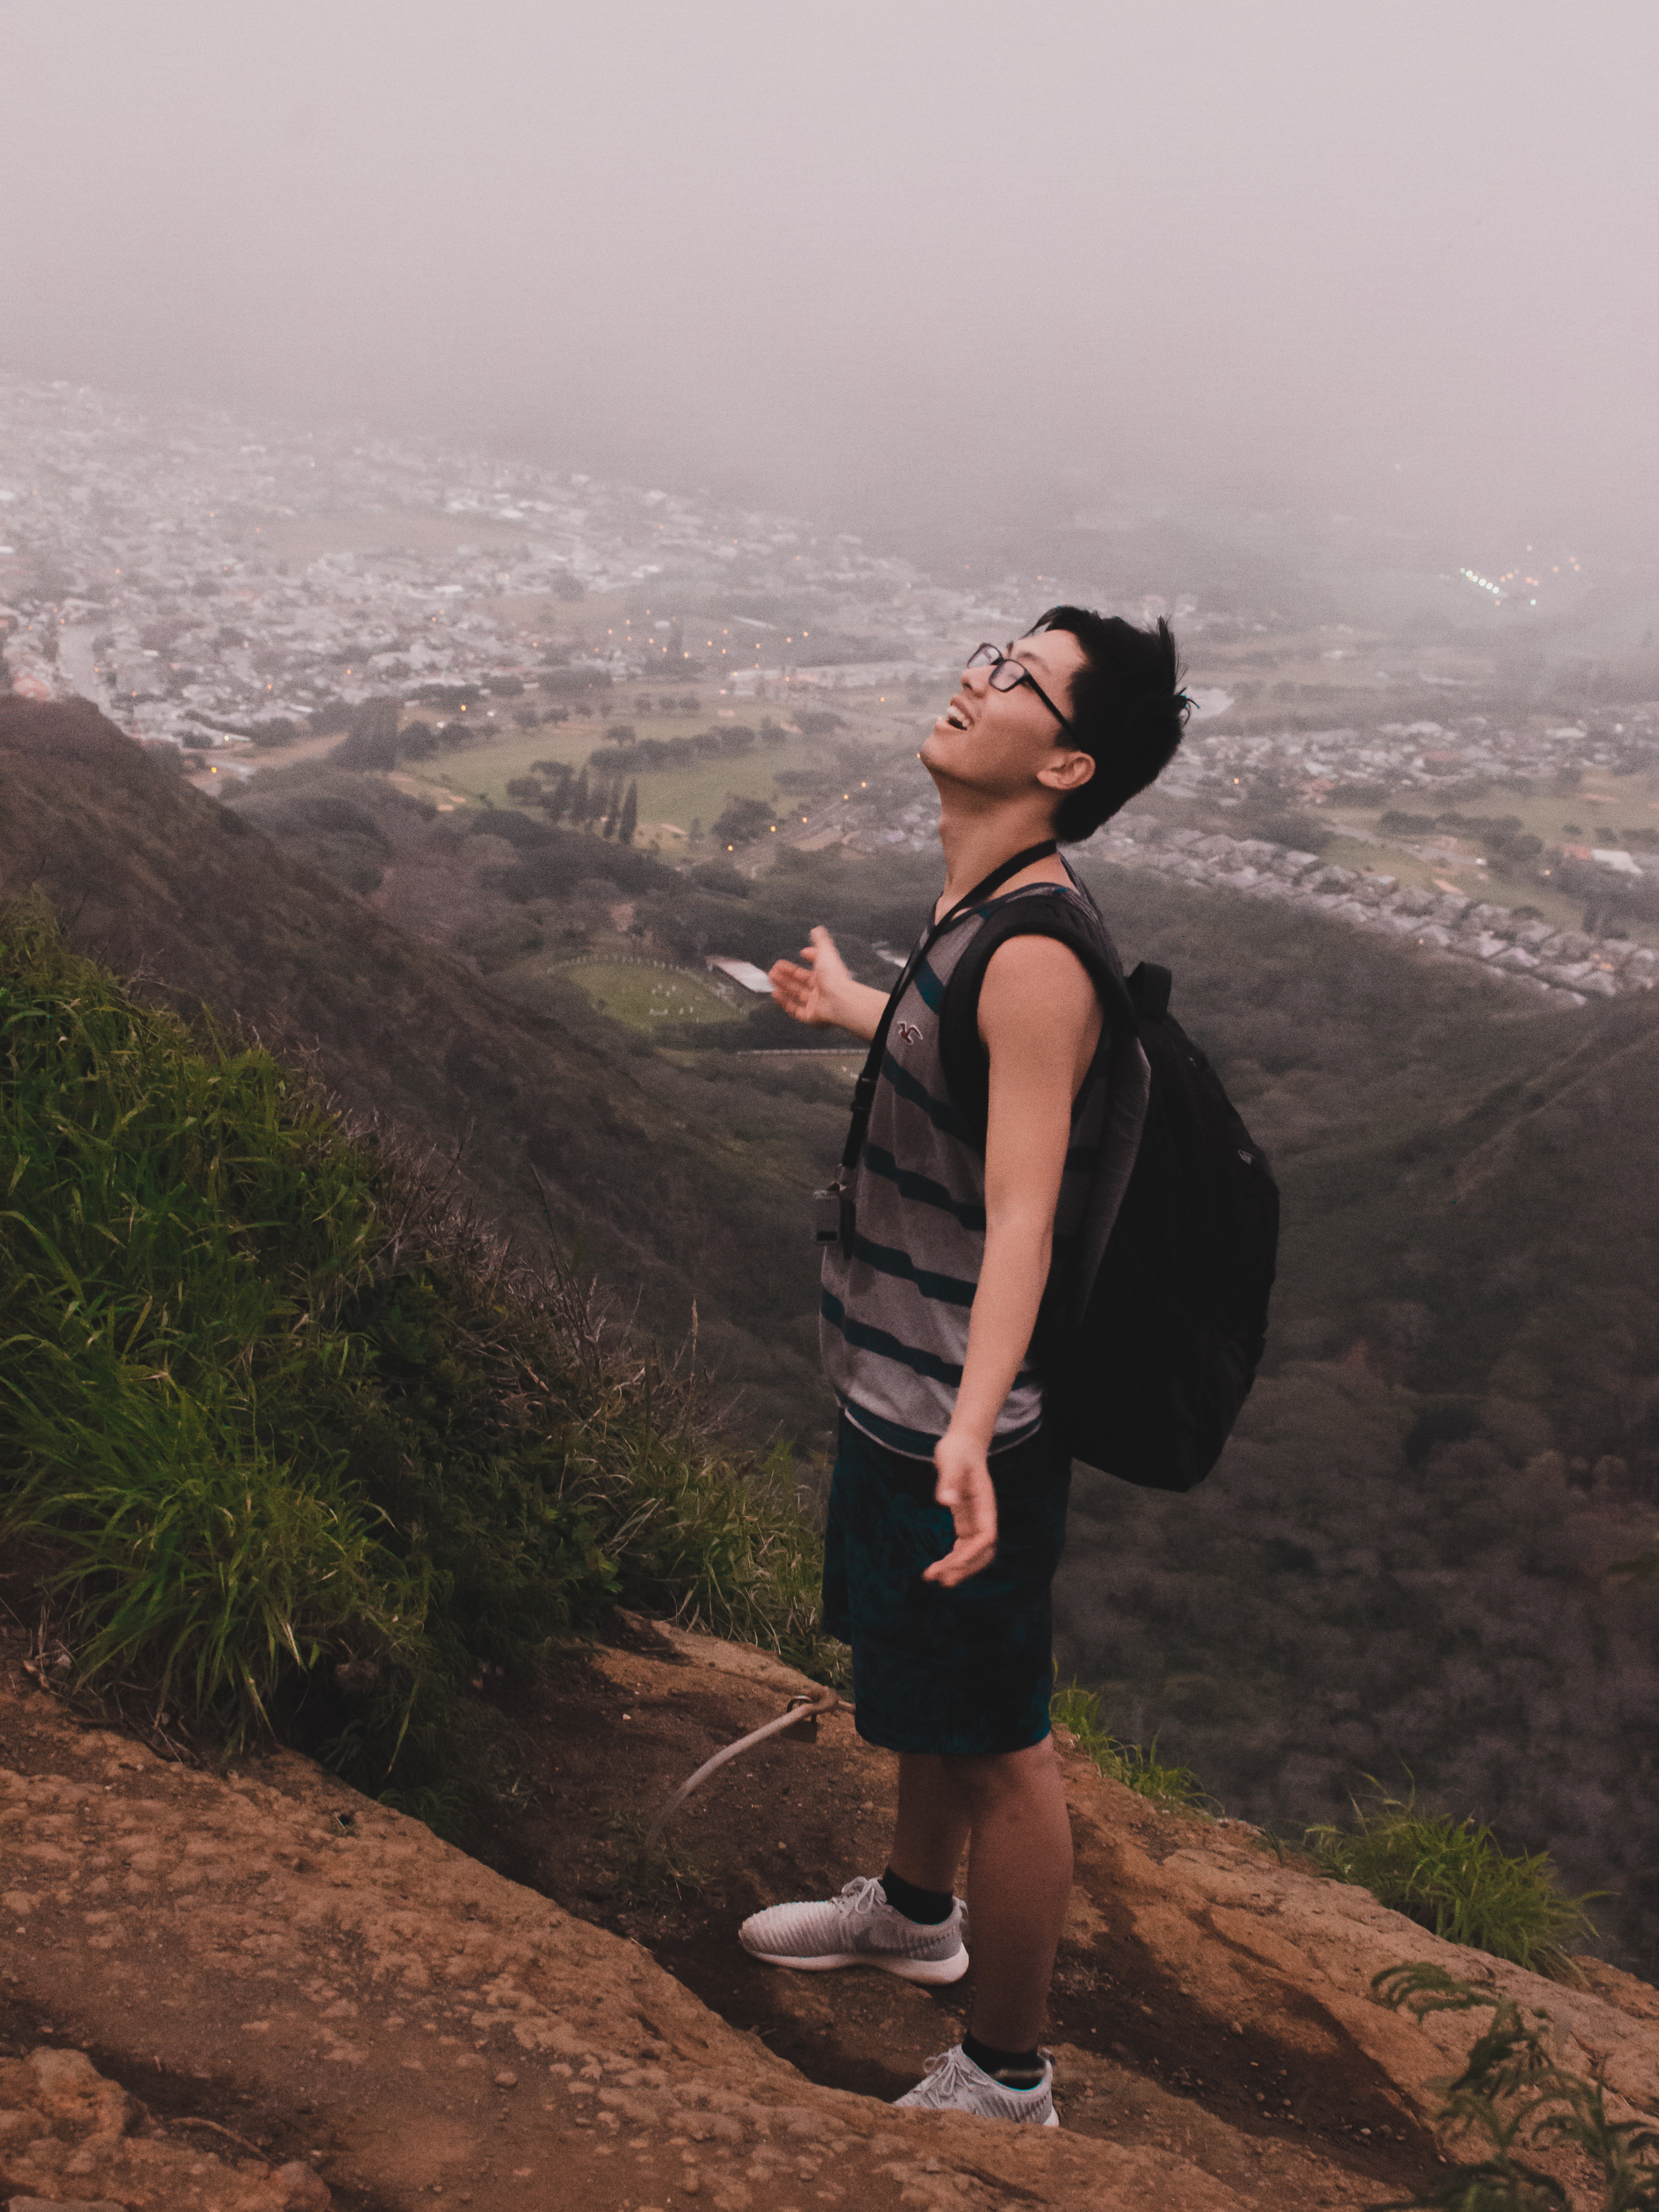 Vacation in Oahu isn't complete without hiking